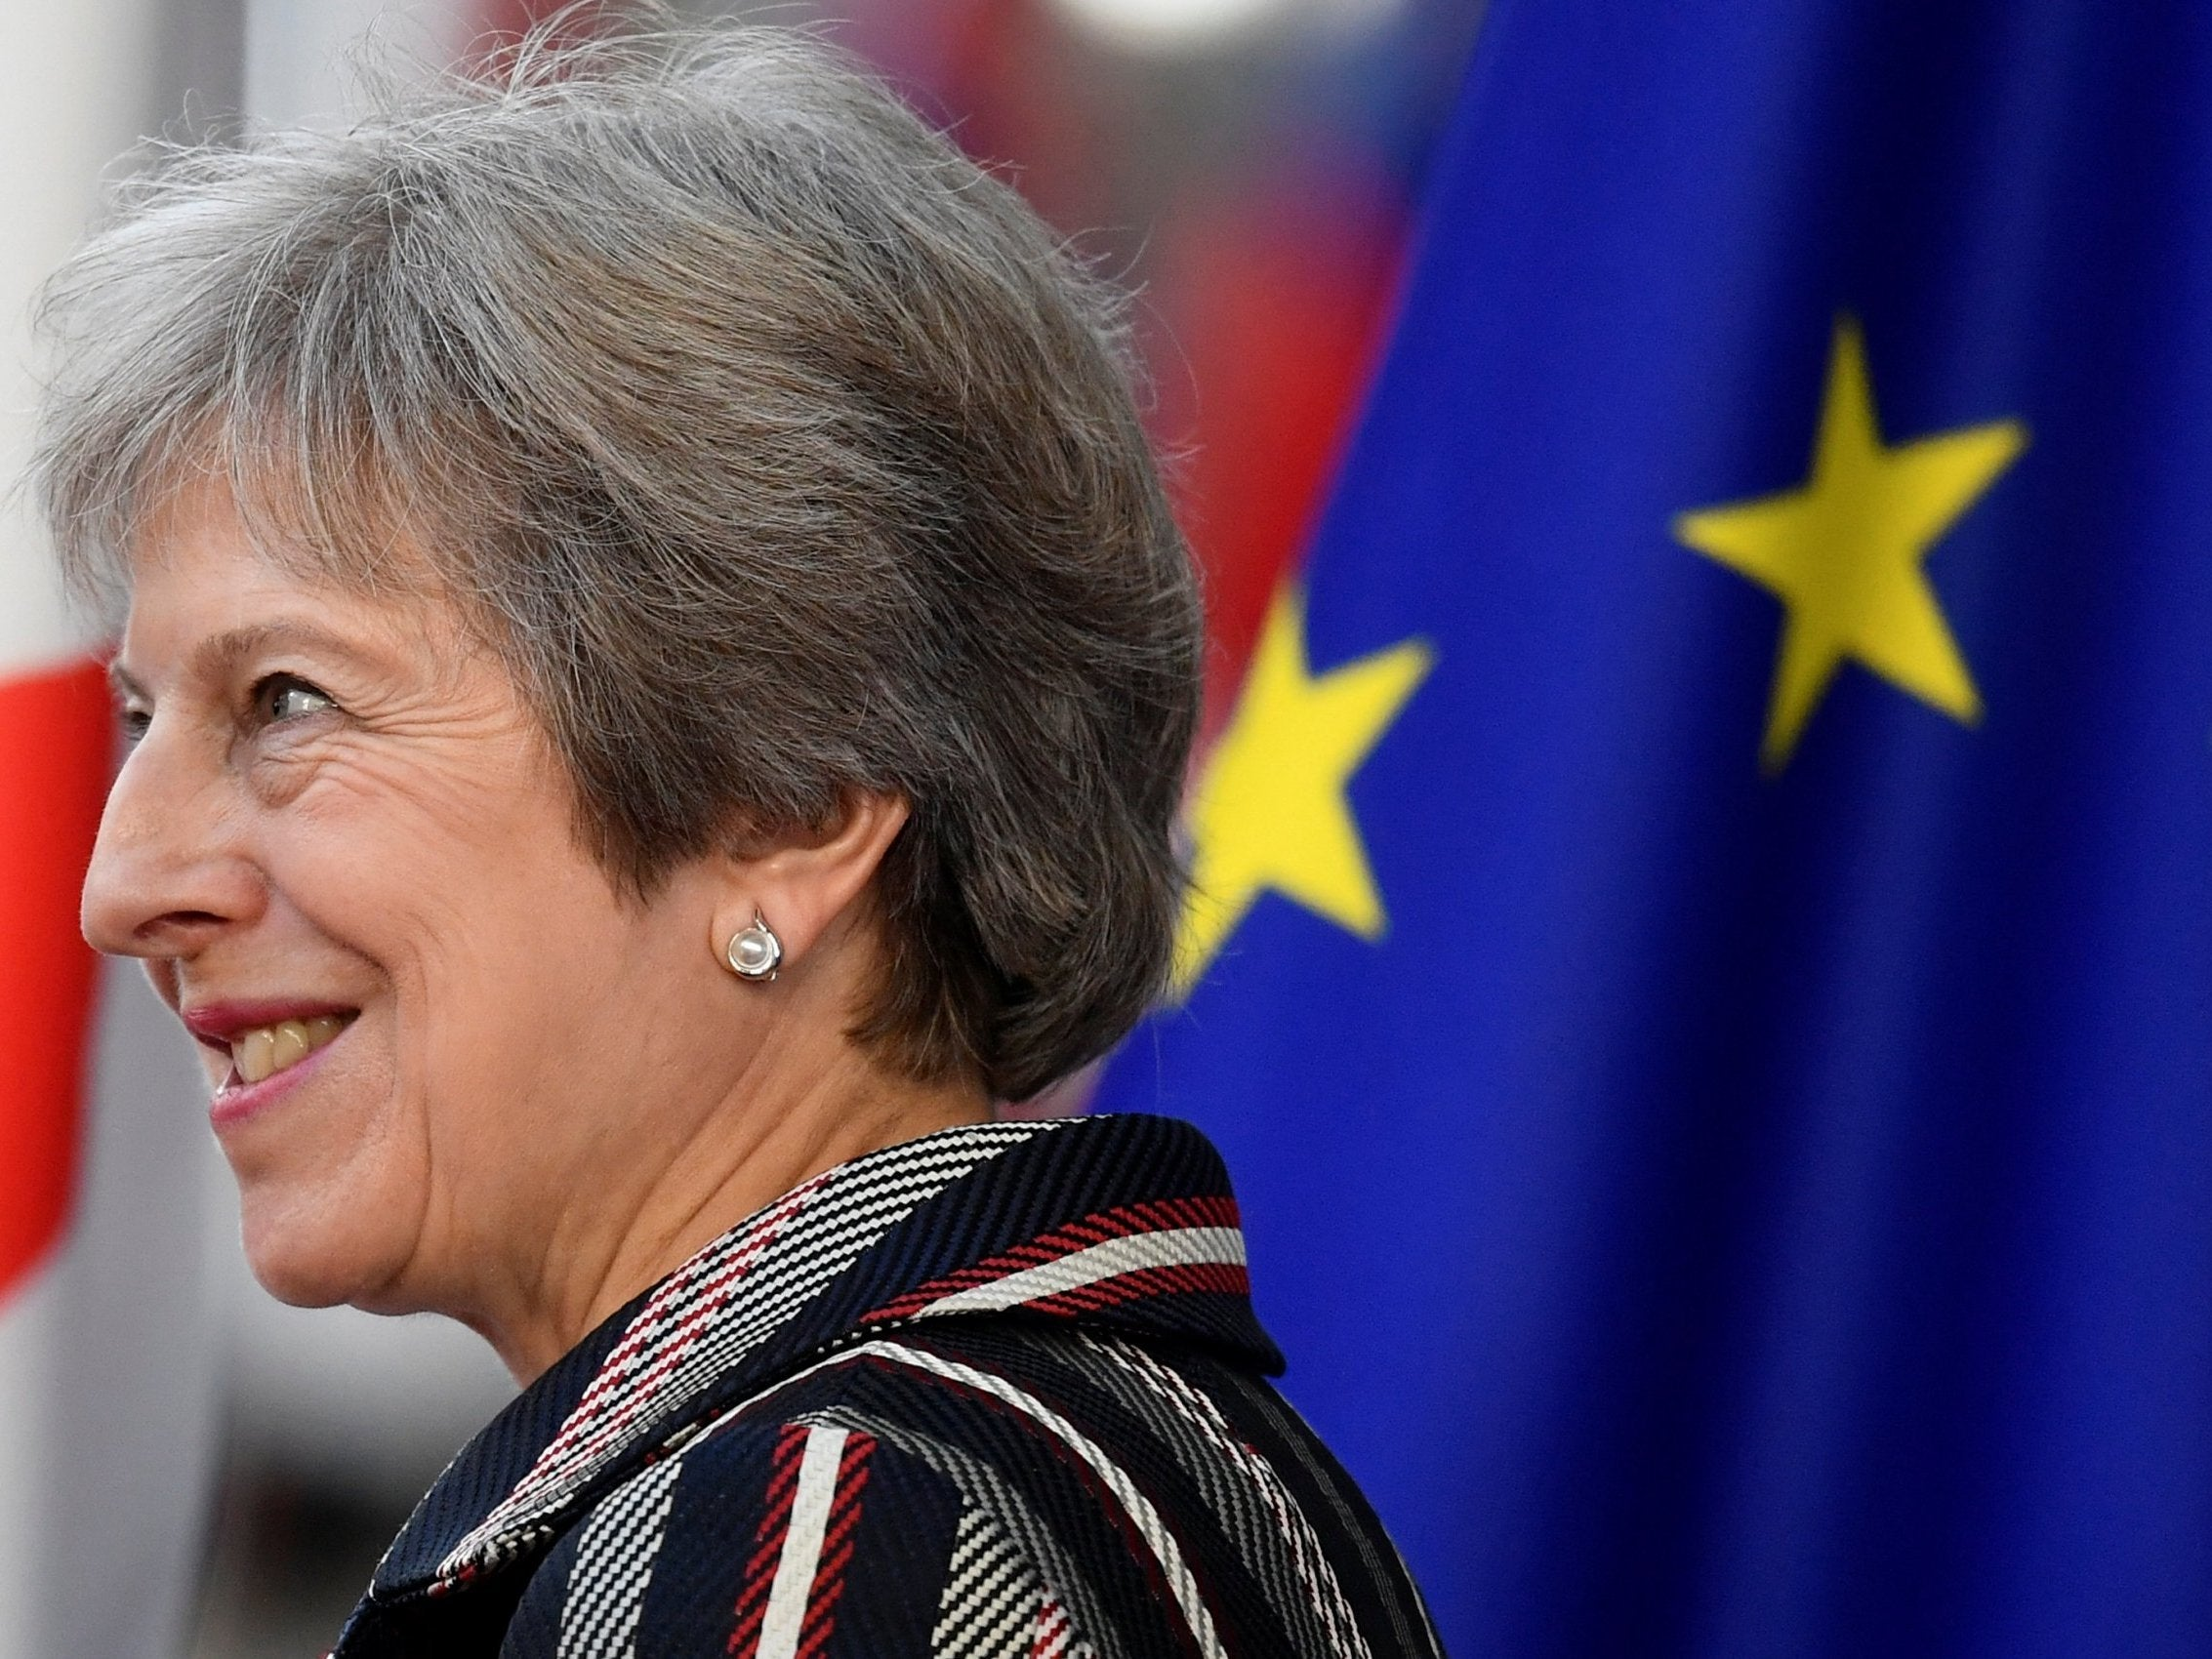 Brexit withdrawal agreement '95% complete', Theresa May to tell MPs